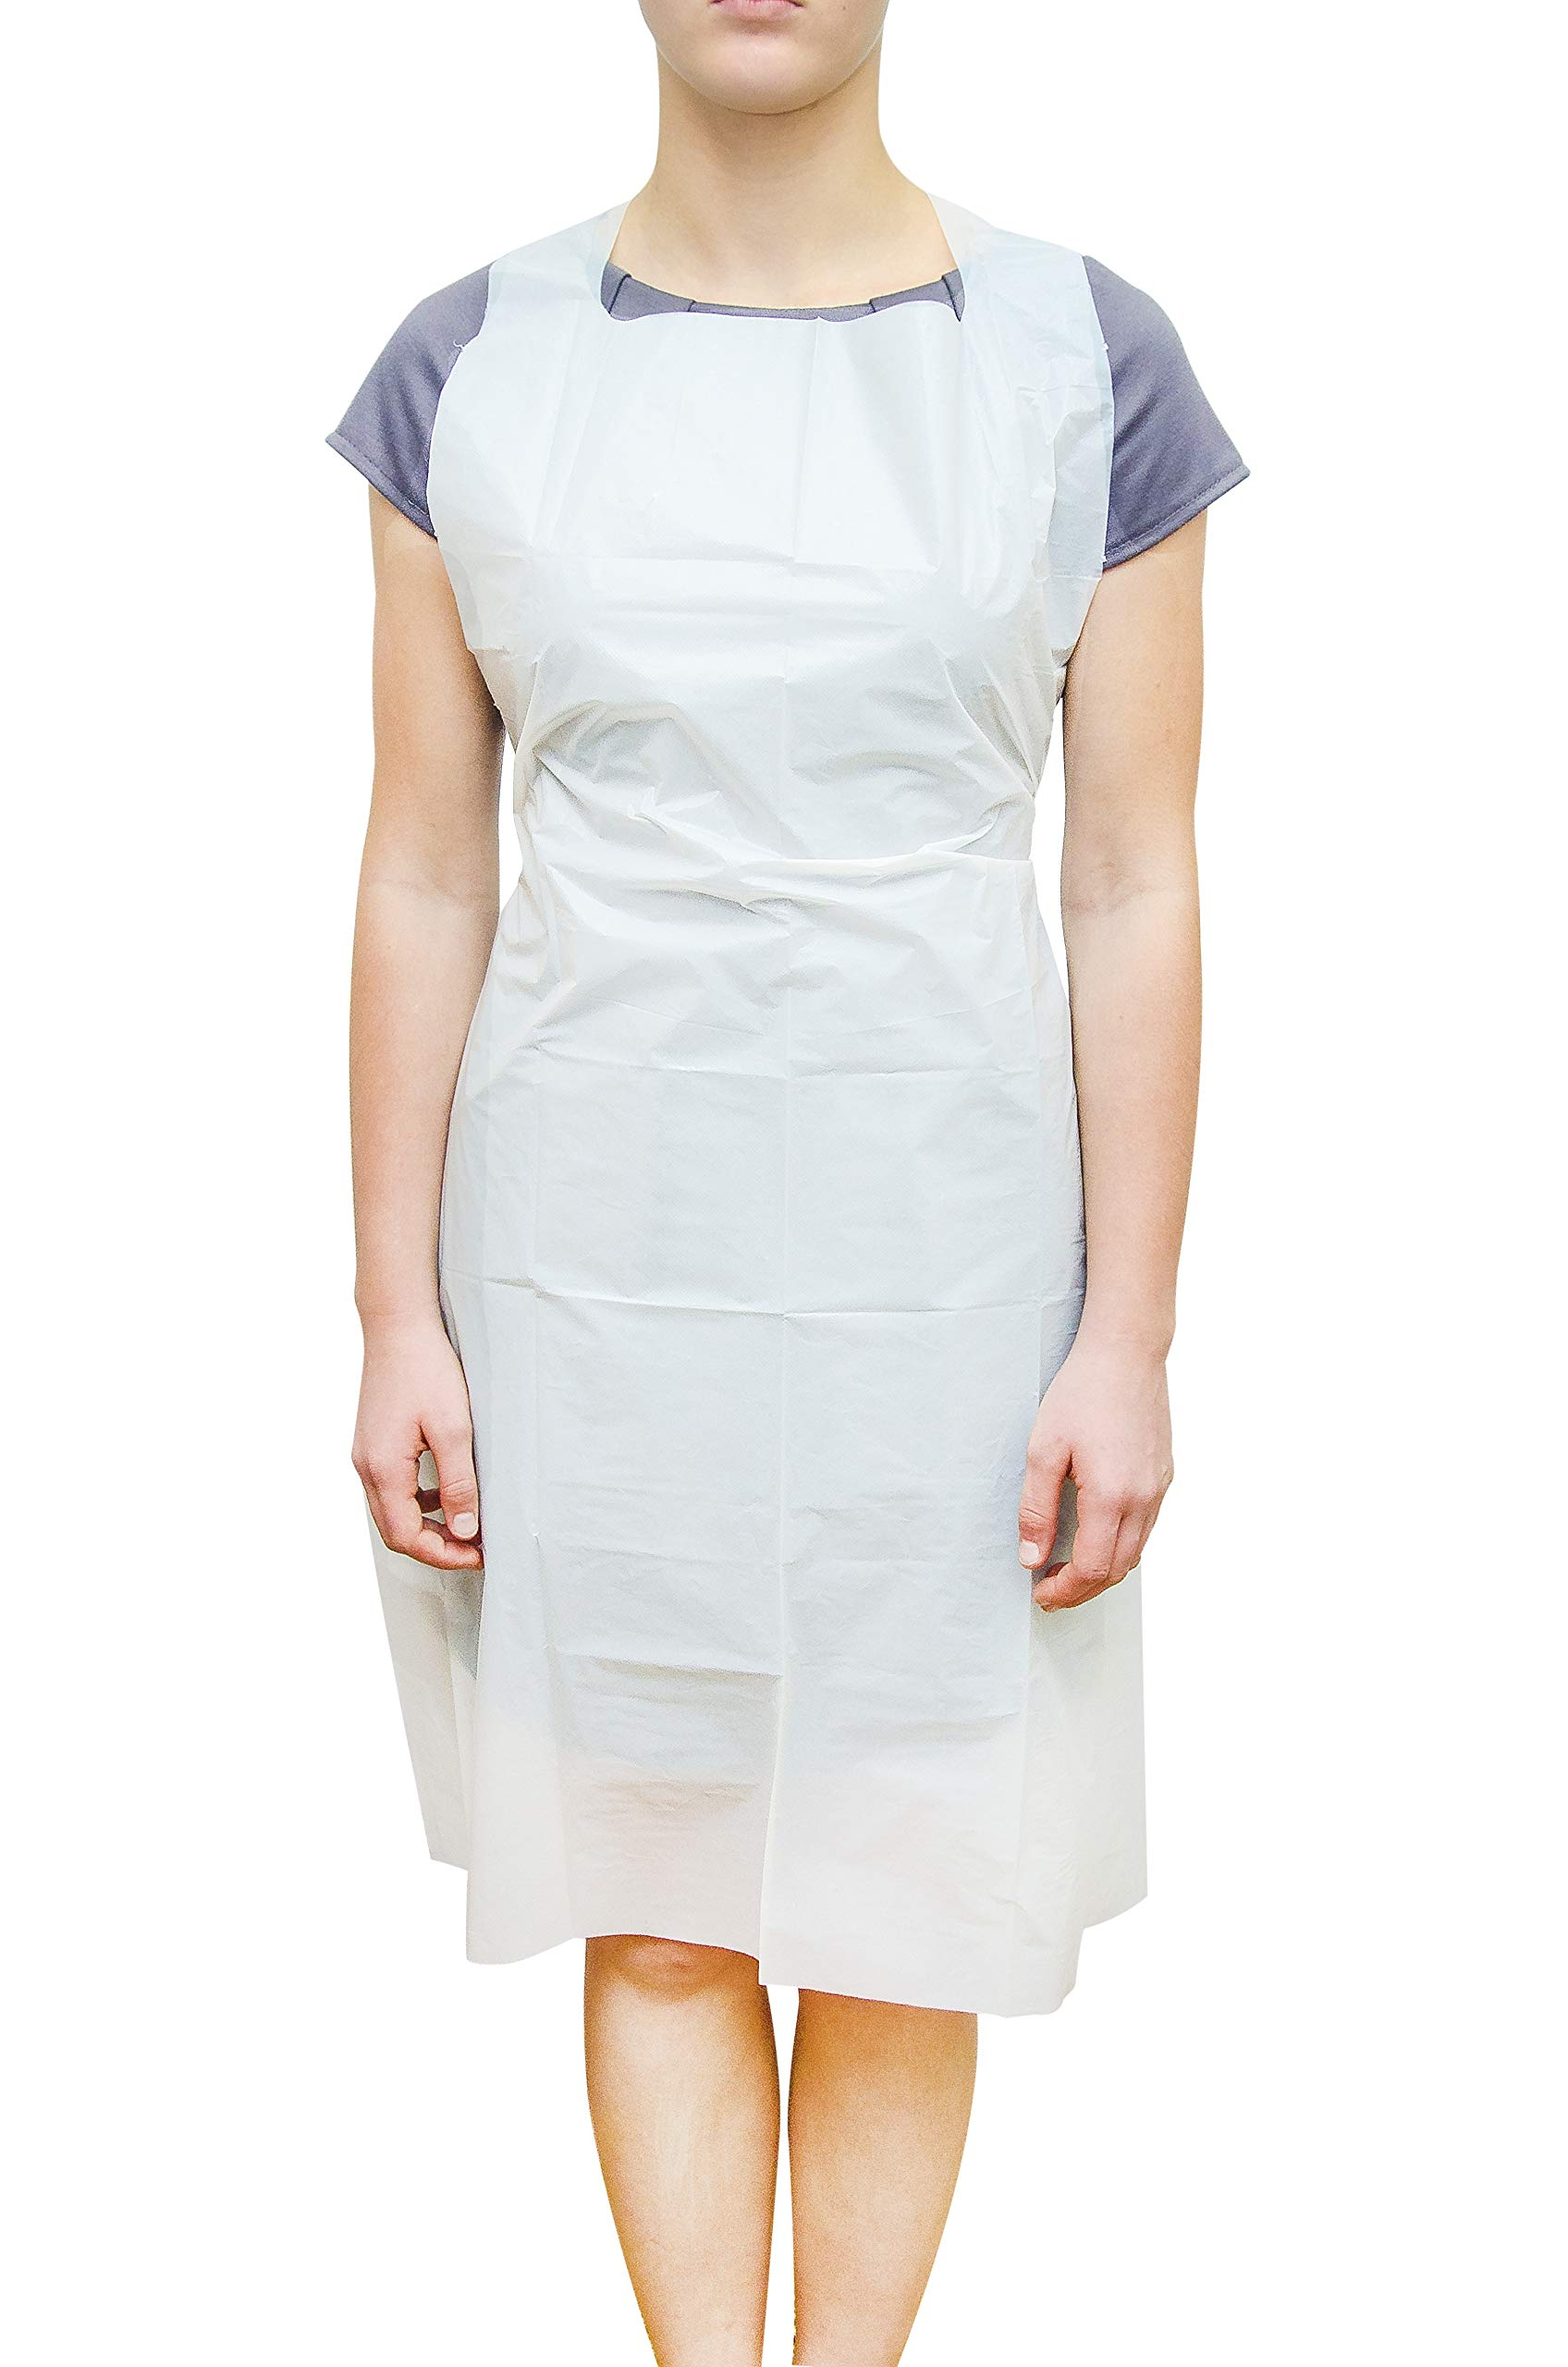 1000 Pack White PE Aprons 28 x 46 inches. 2 Mil Disposable Polyethylene Aprons. Unisex Liquid-Proof Workwear. White Protective Uniform Aprons for Men, Women. Lightweight, Breathable. Wholesale Price.